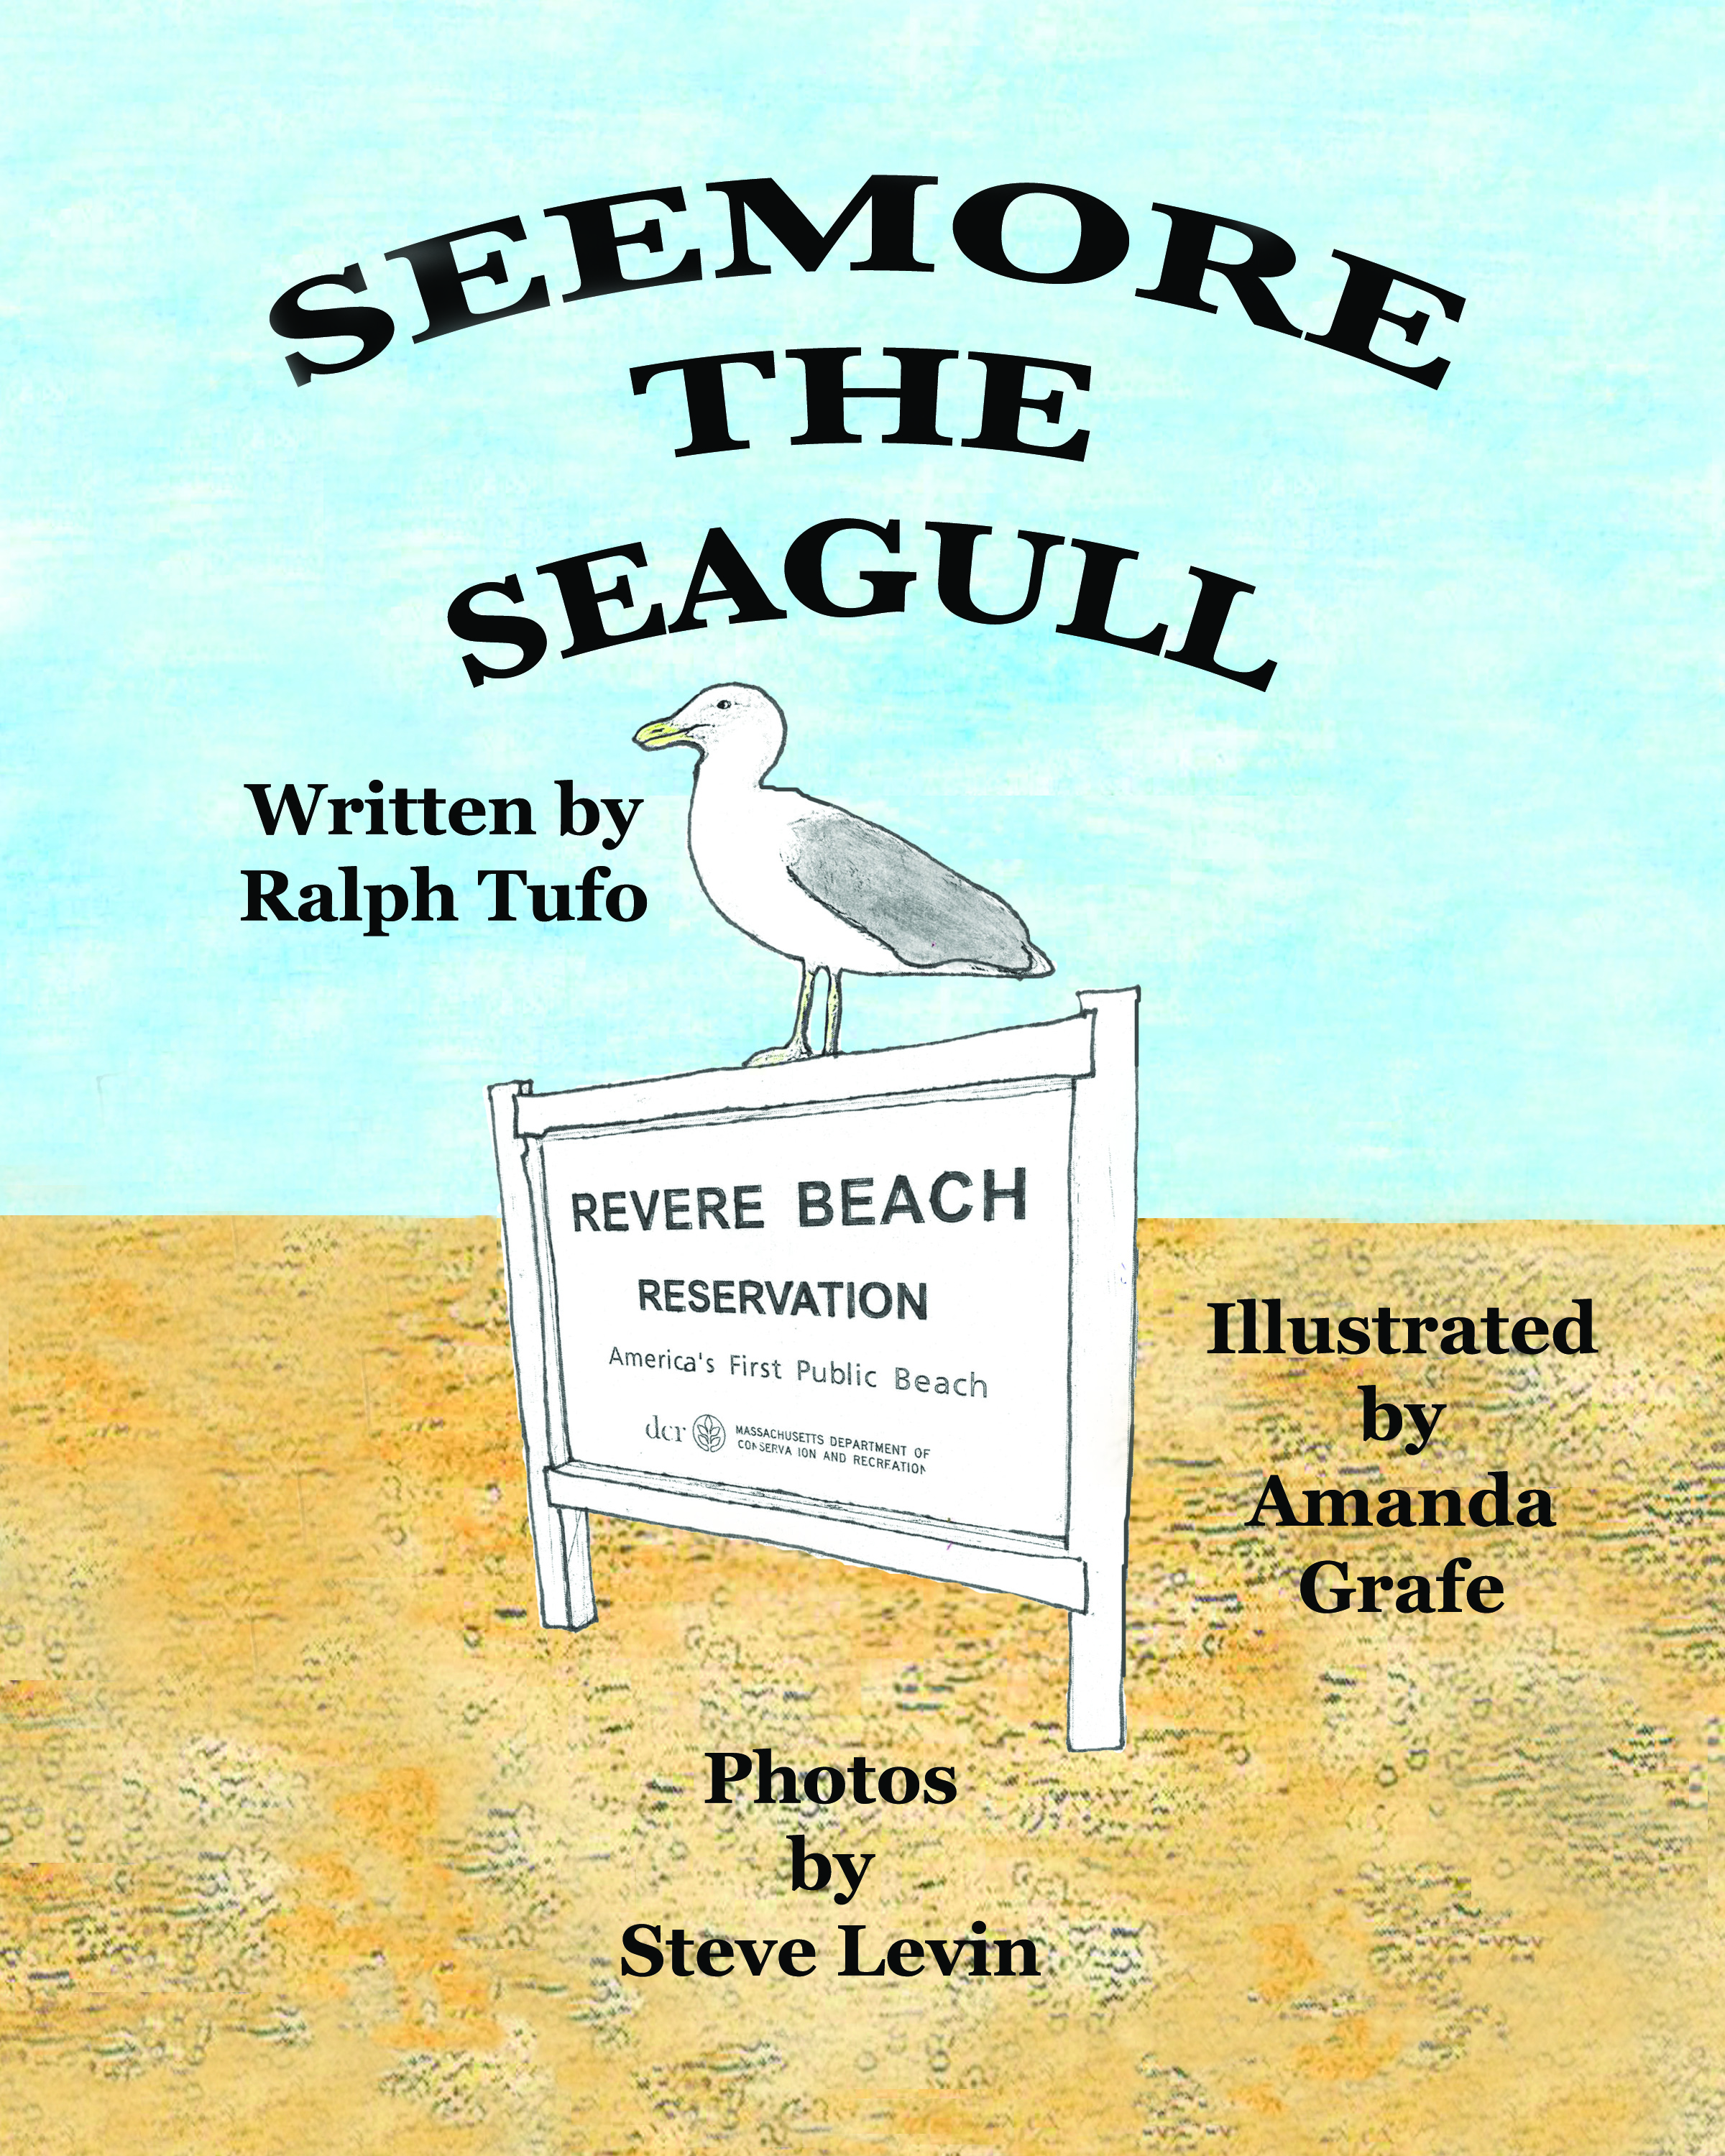 Seemore the Seagull